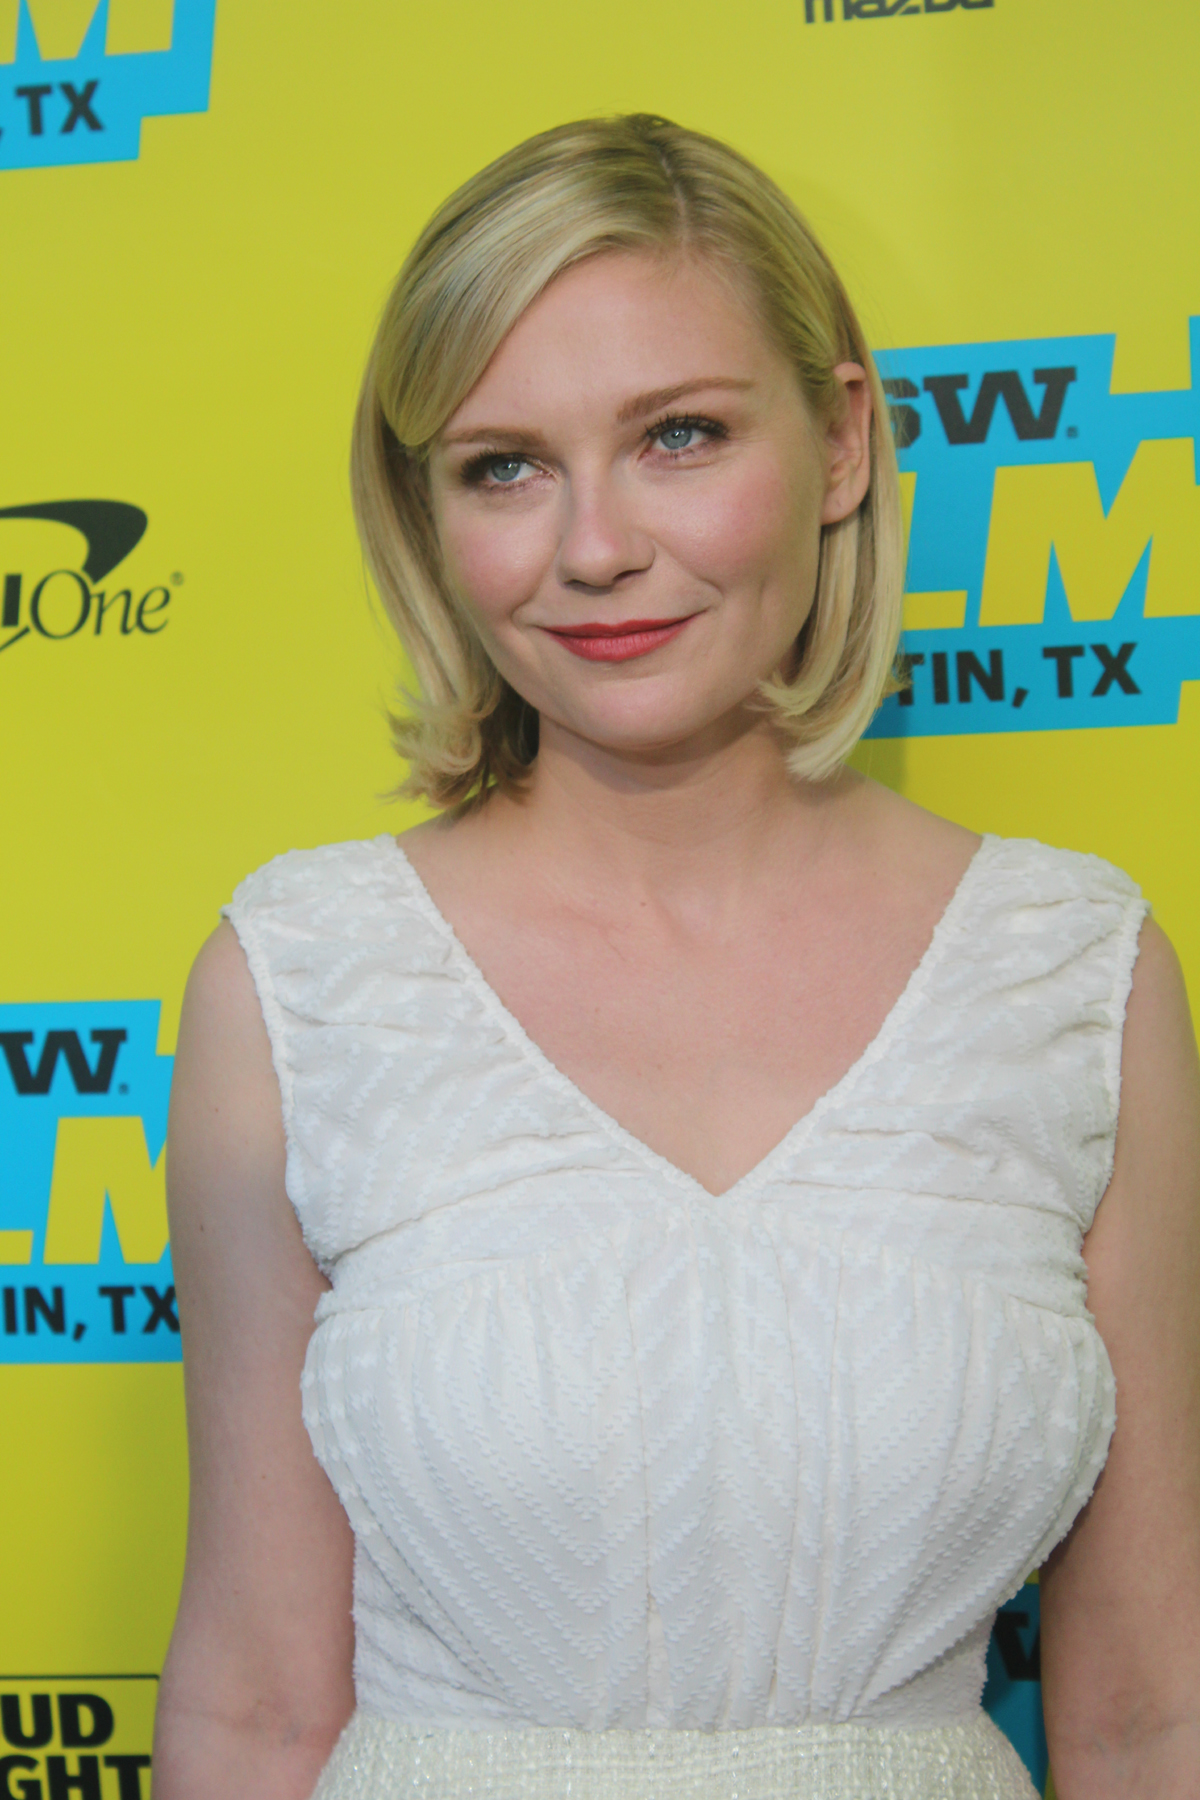 Kirsten Dunst // Photo by Heather Kaplan